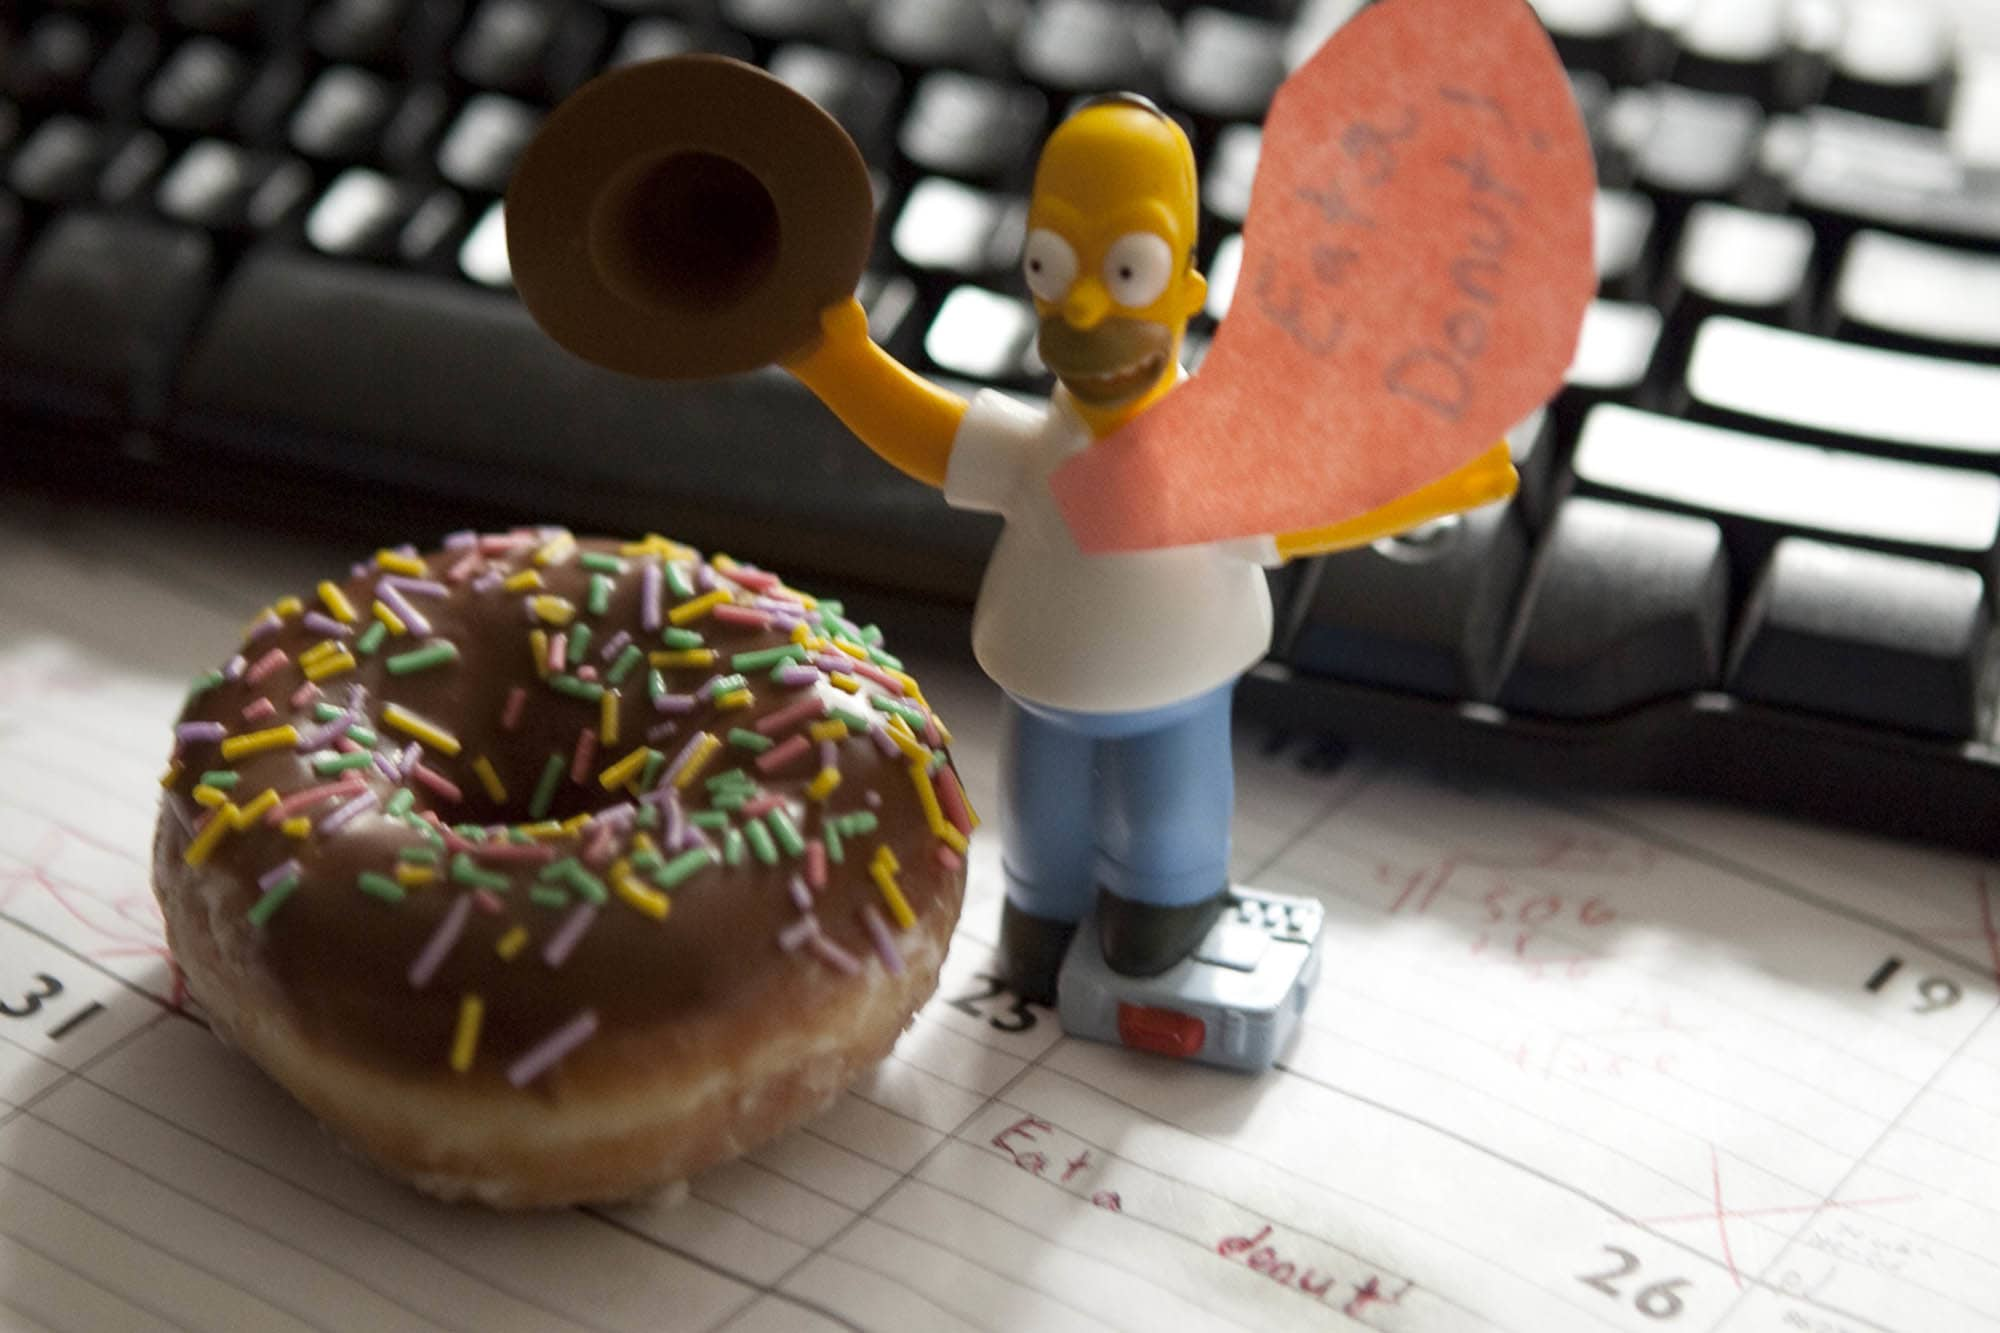 Eat a donut day